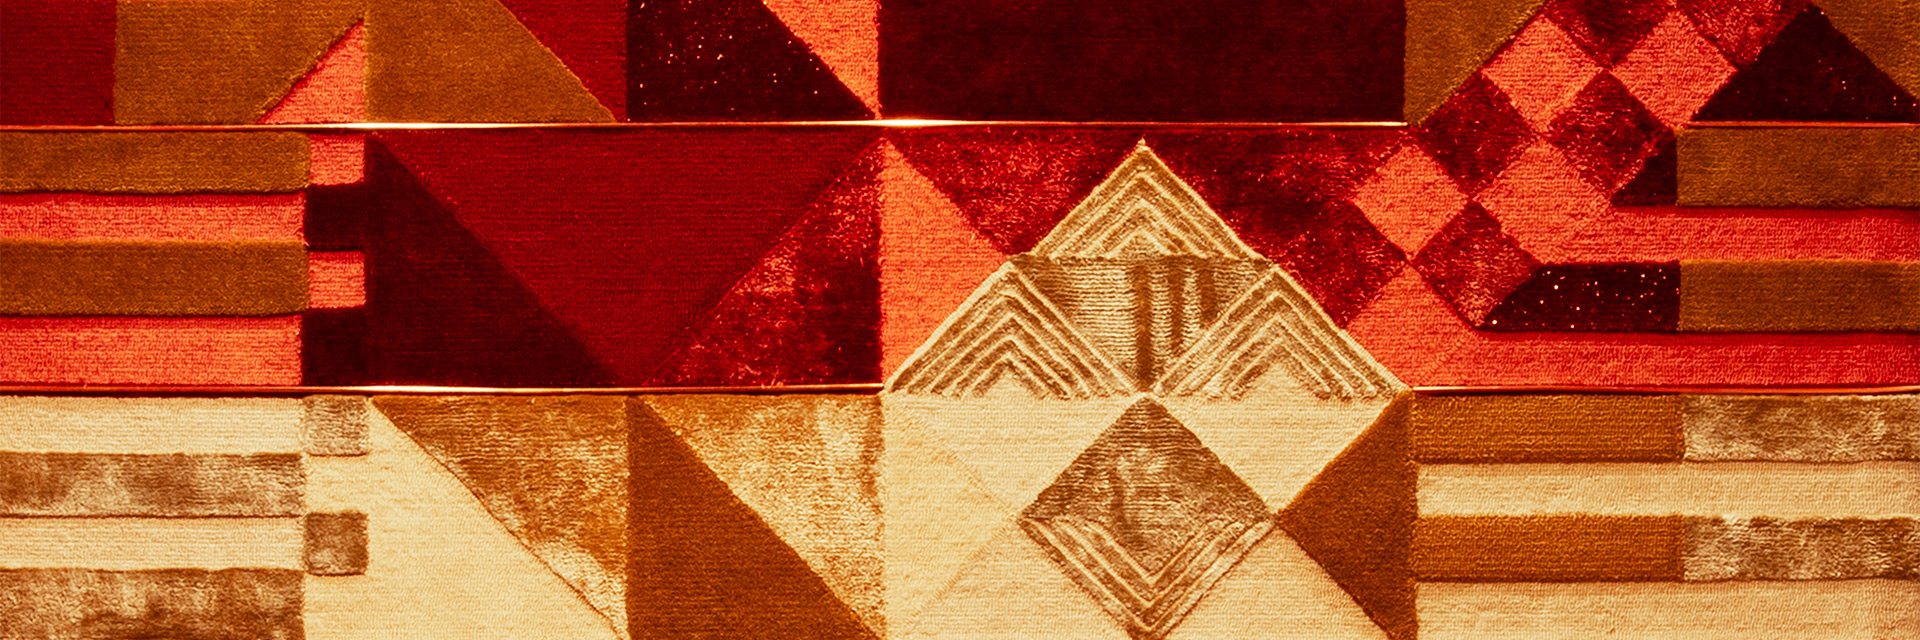 red and tan pattern